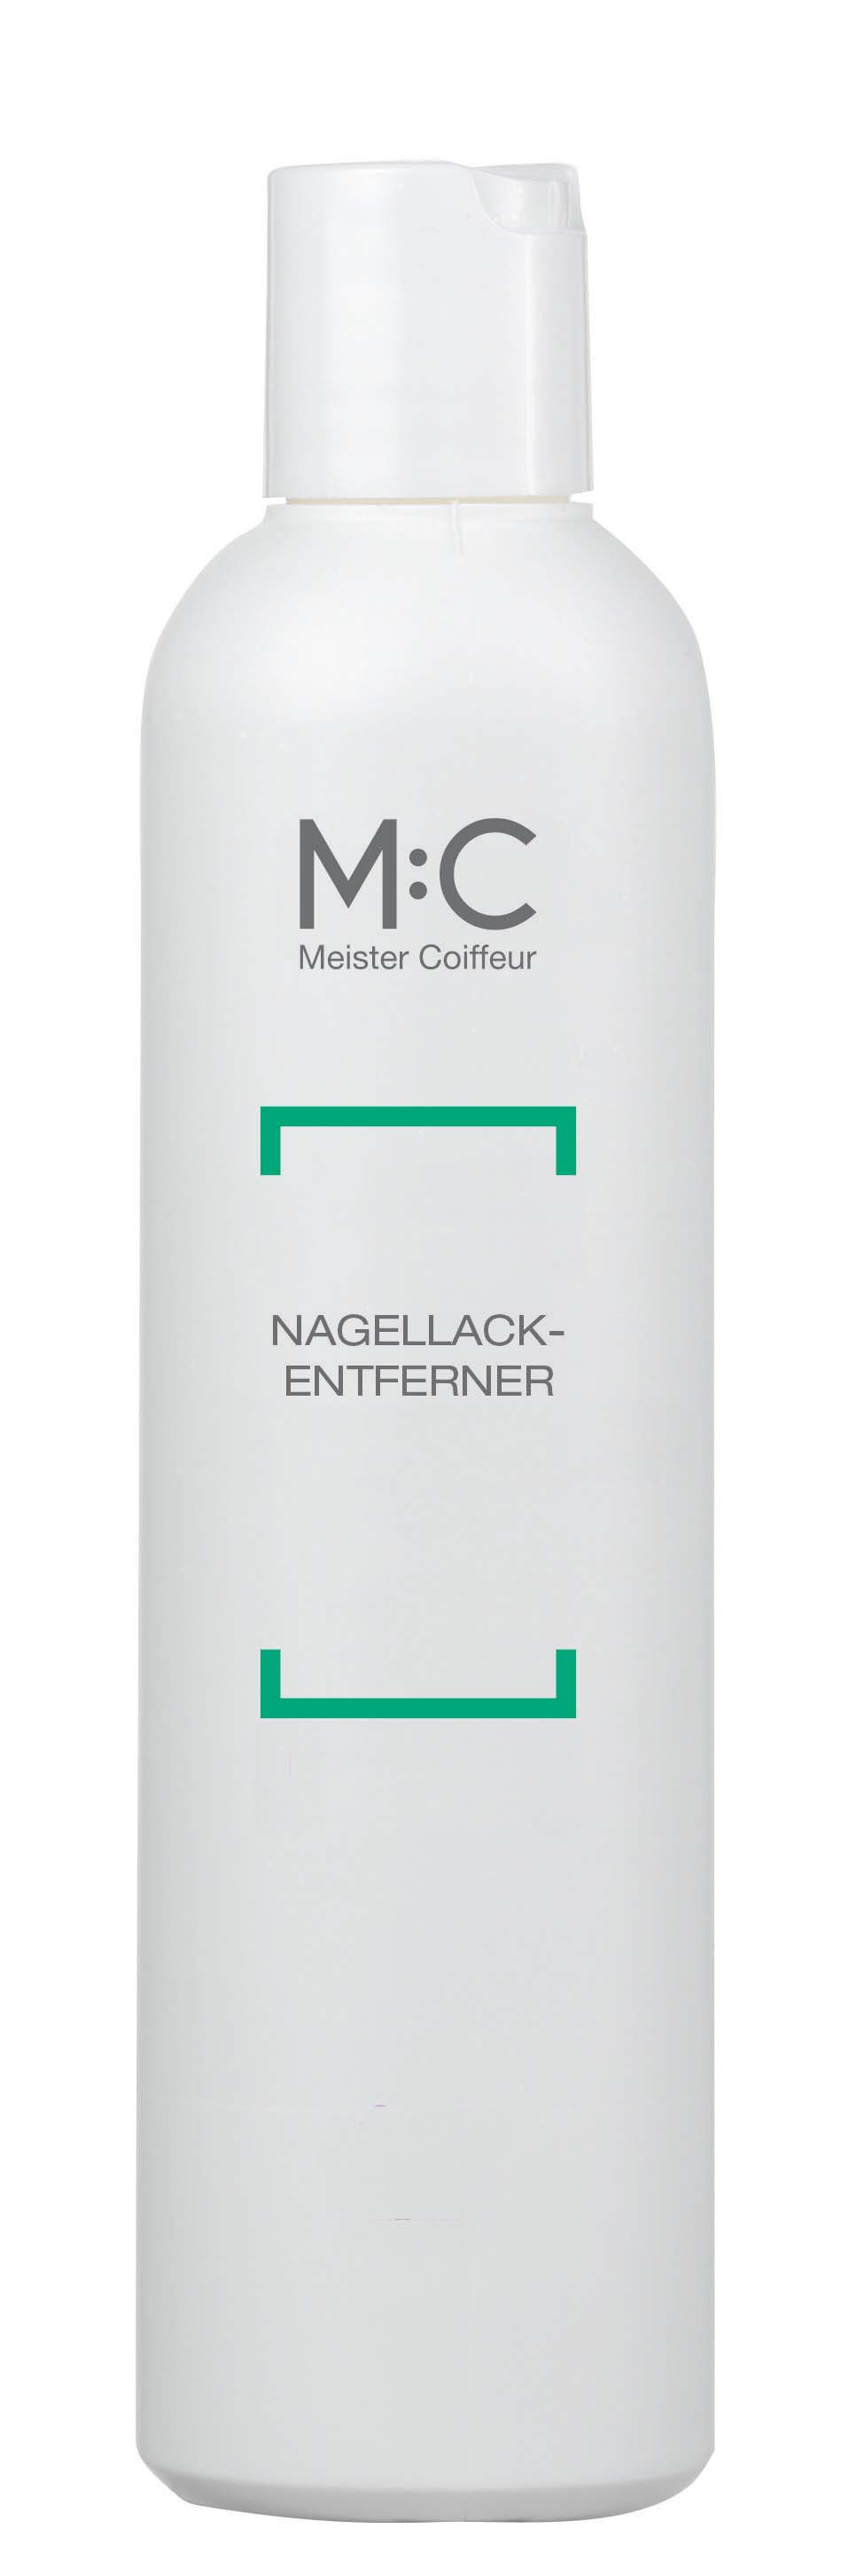 M:C Nail Varnish Remover H 250 мл